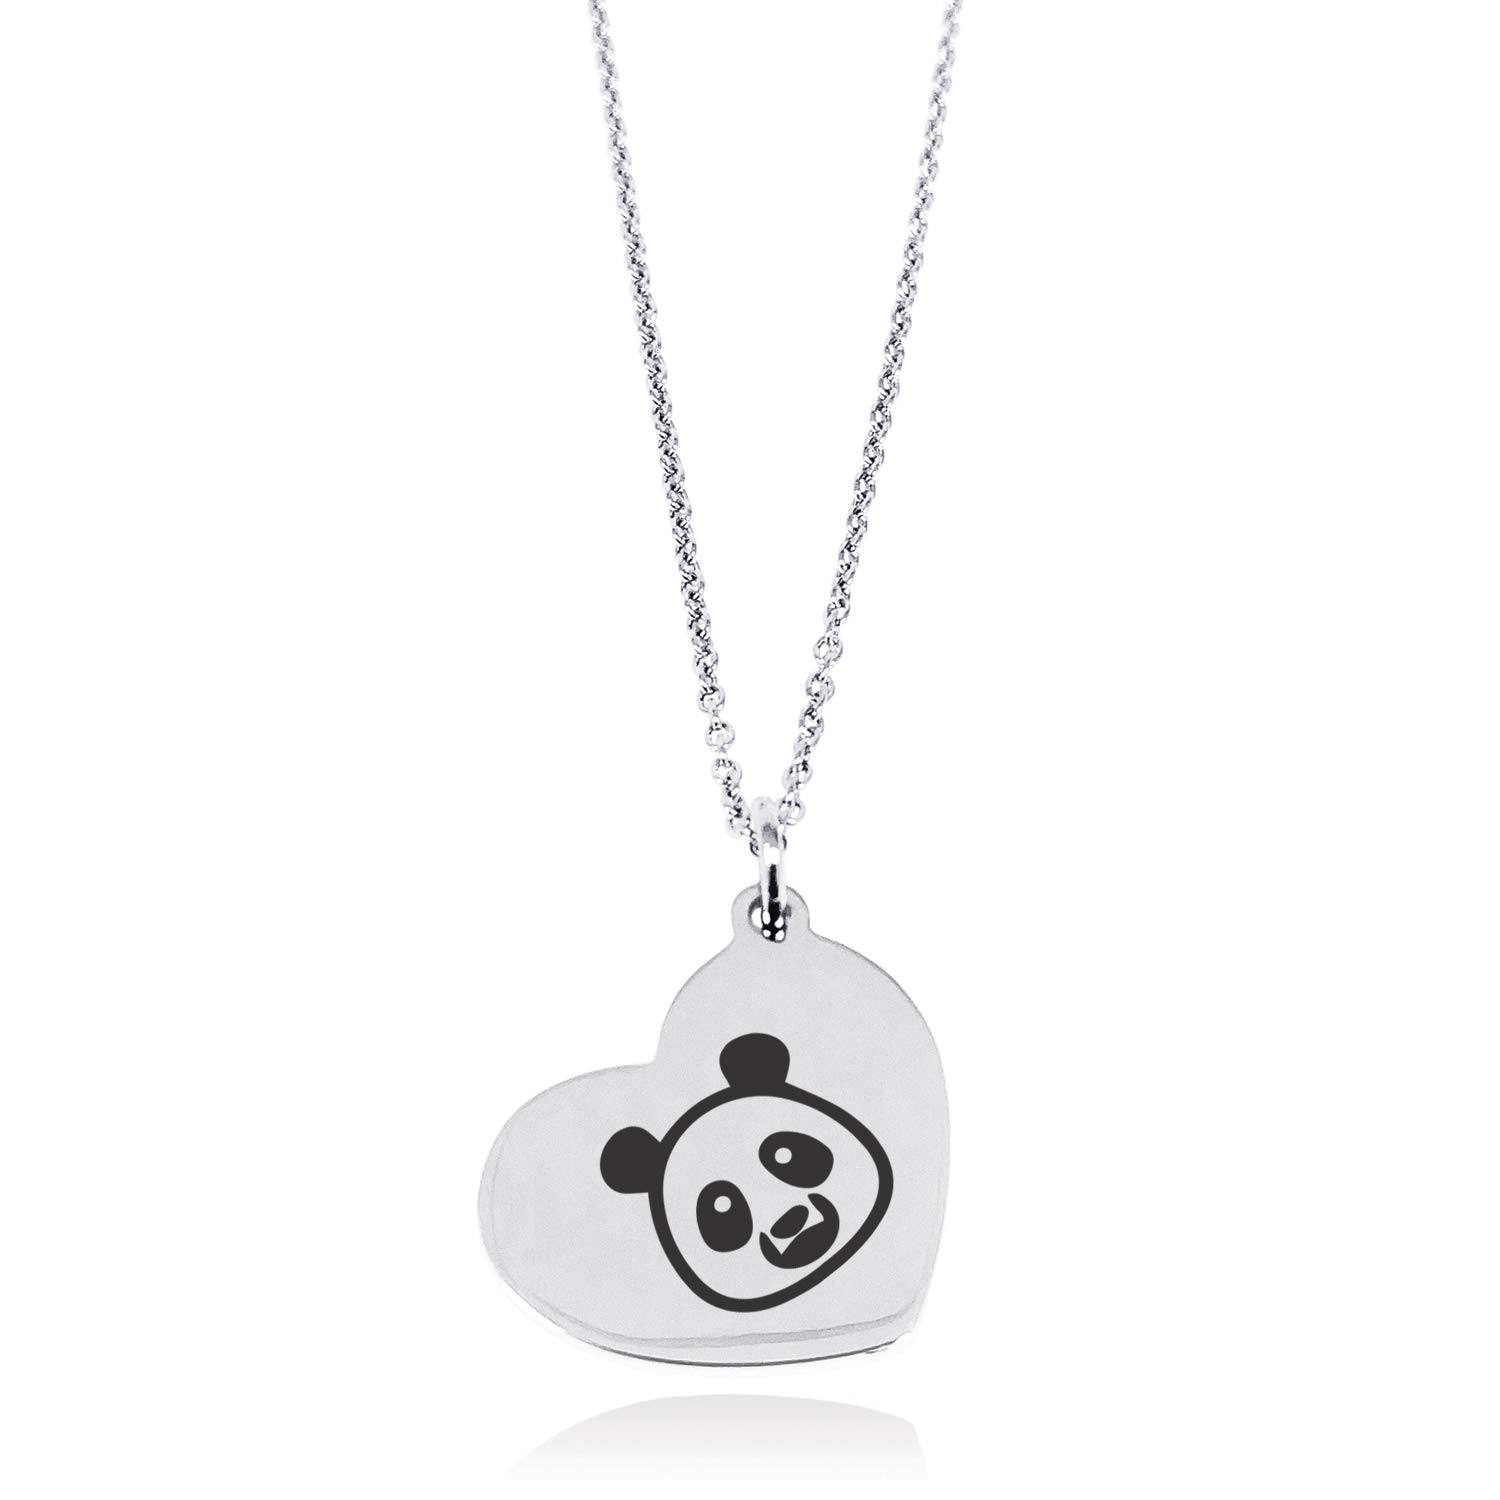 Tioneer Stainless Steel Panda Icon Floating Heart Tag Charm Pendant Necklace